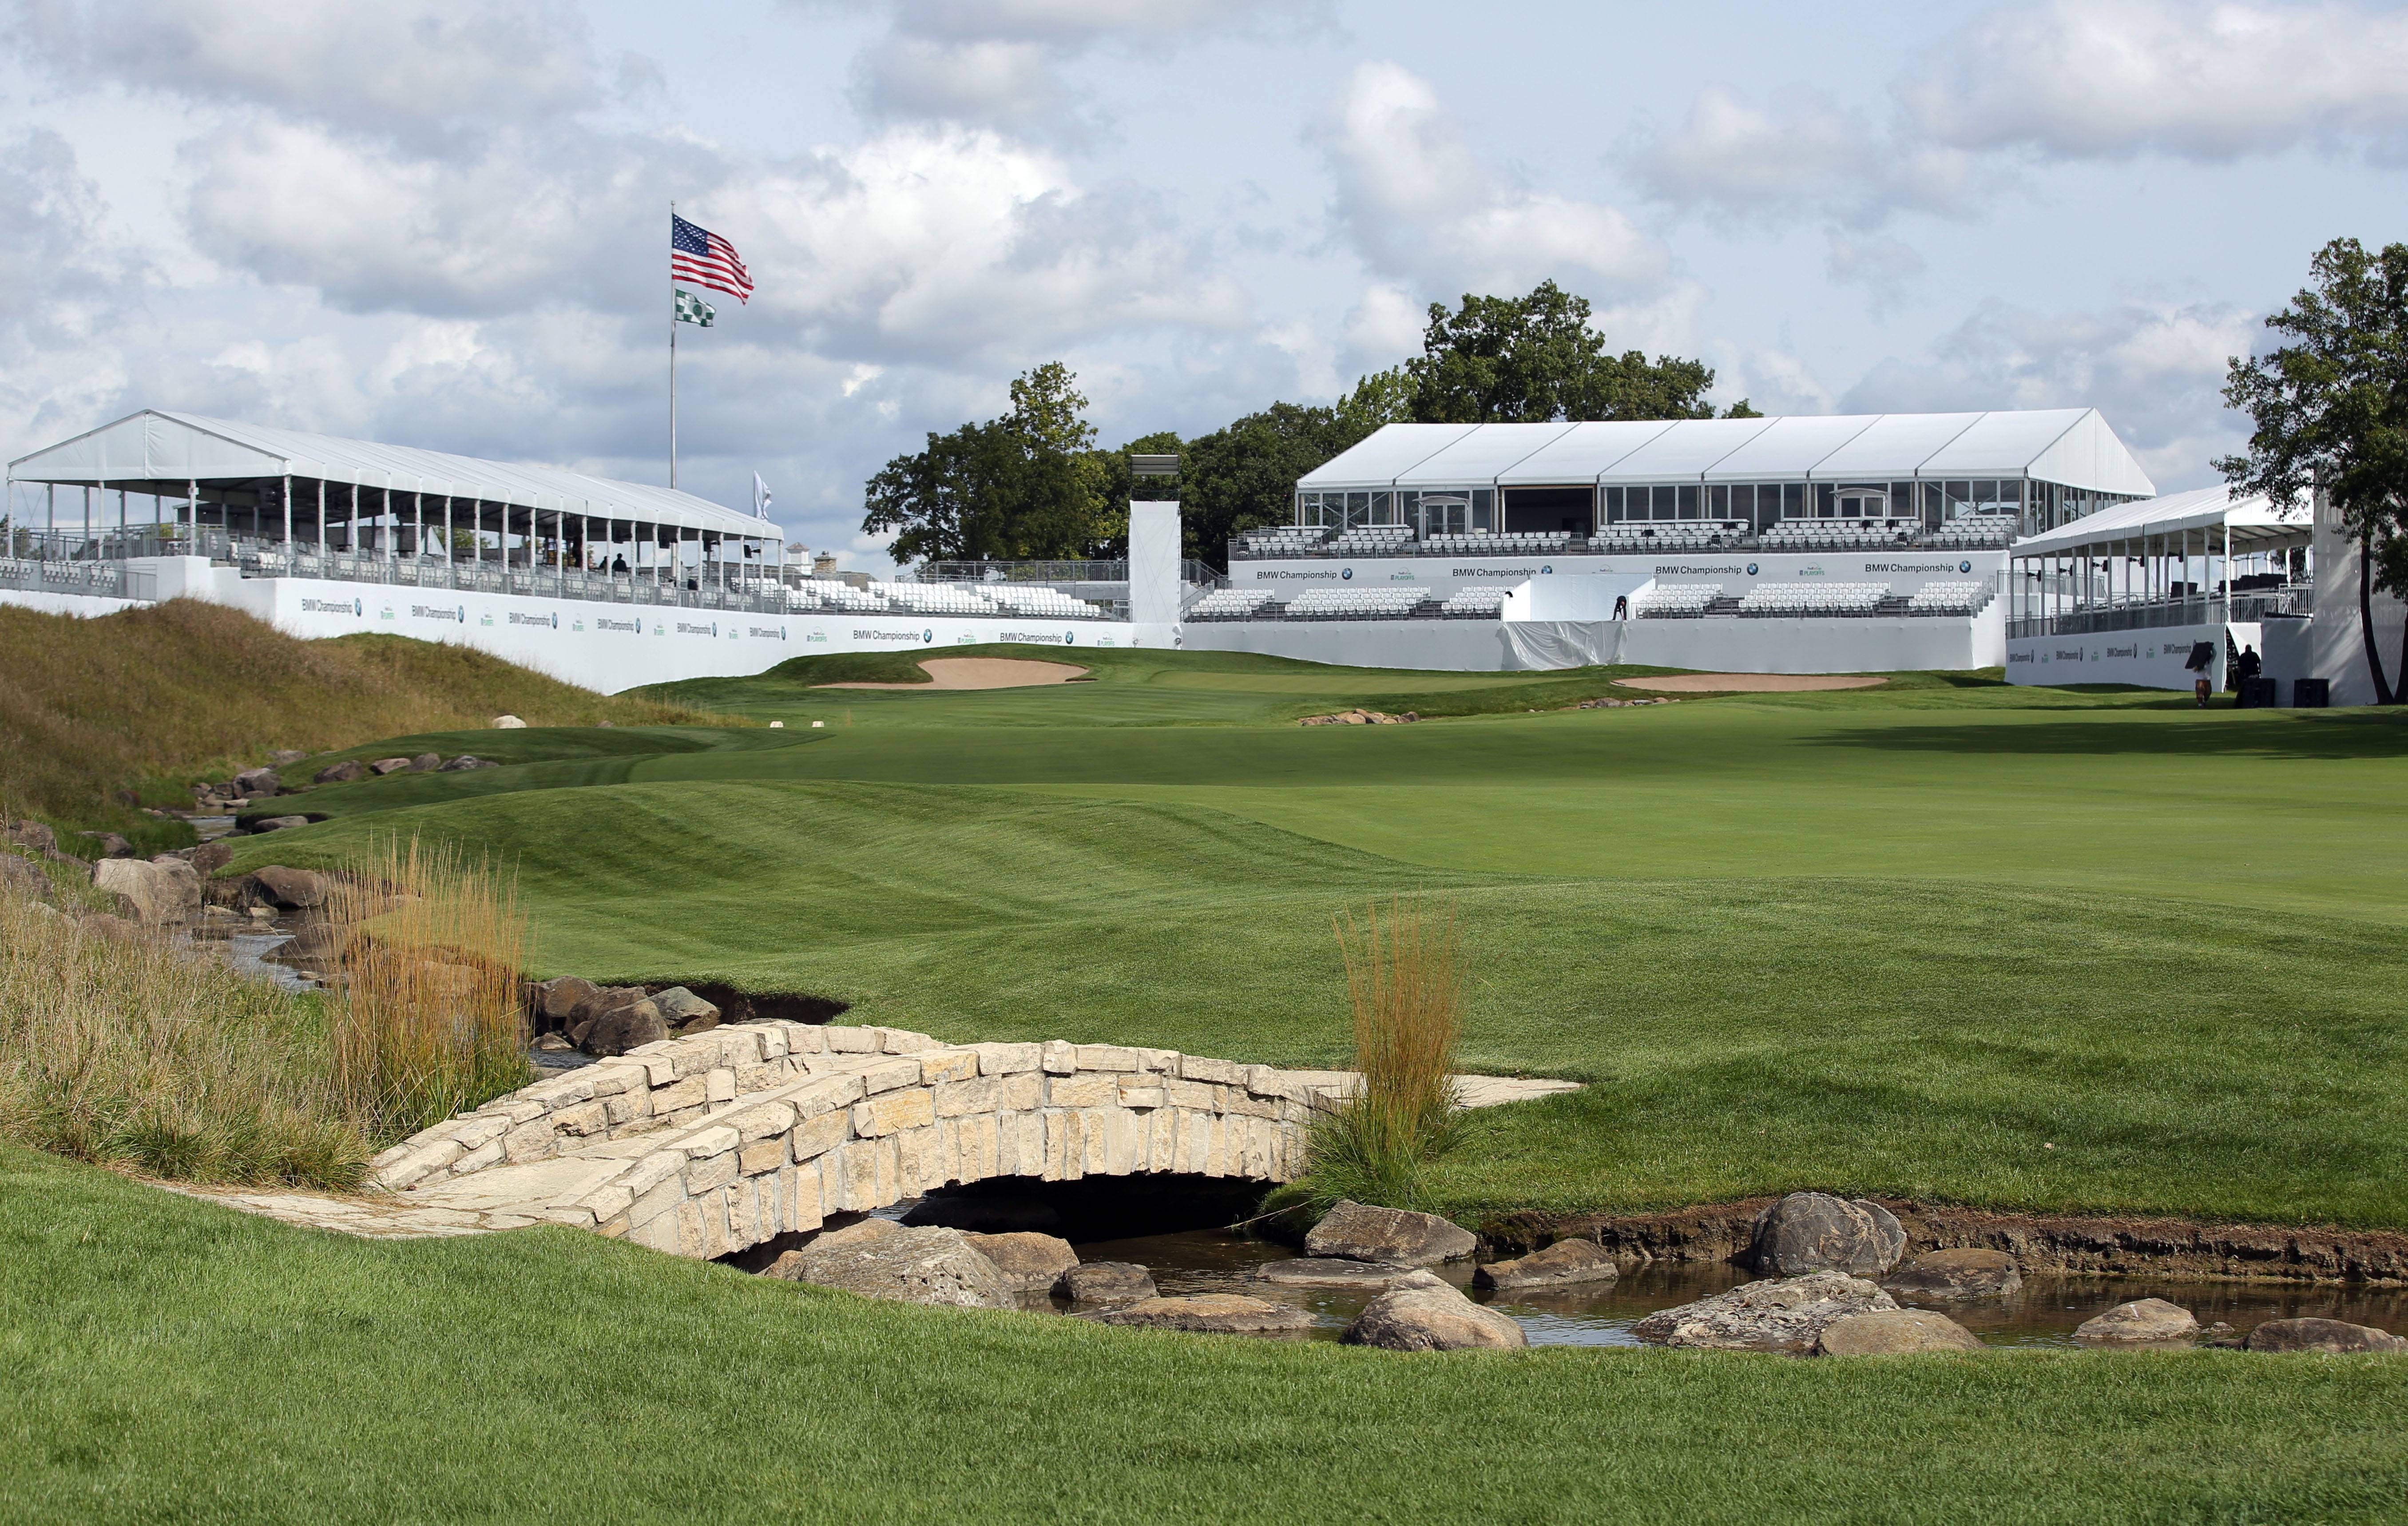 The tents are up on the 18th hole as preparations continue for the BMW Championship, which will be played for the third -- and possibly final -- time at Conway Farms in Lake Forest this week.